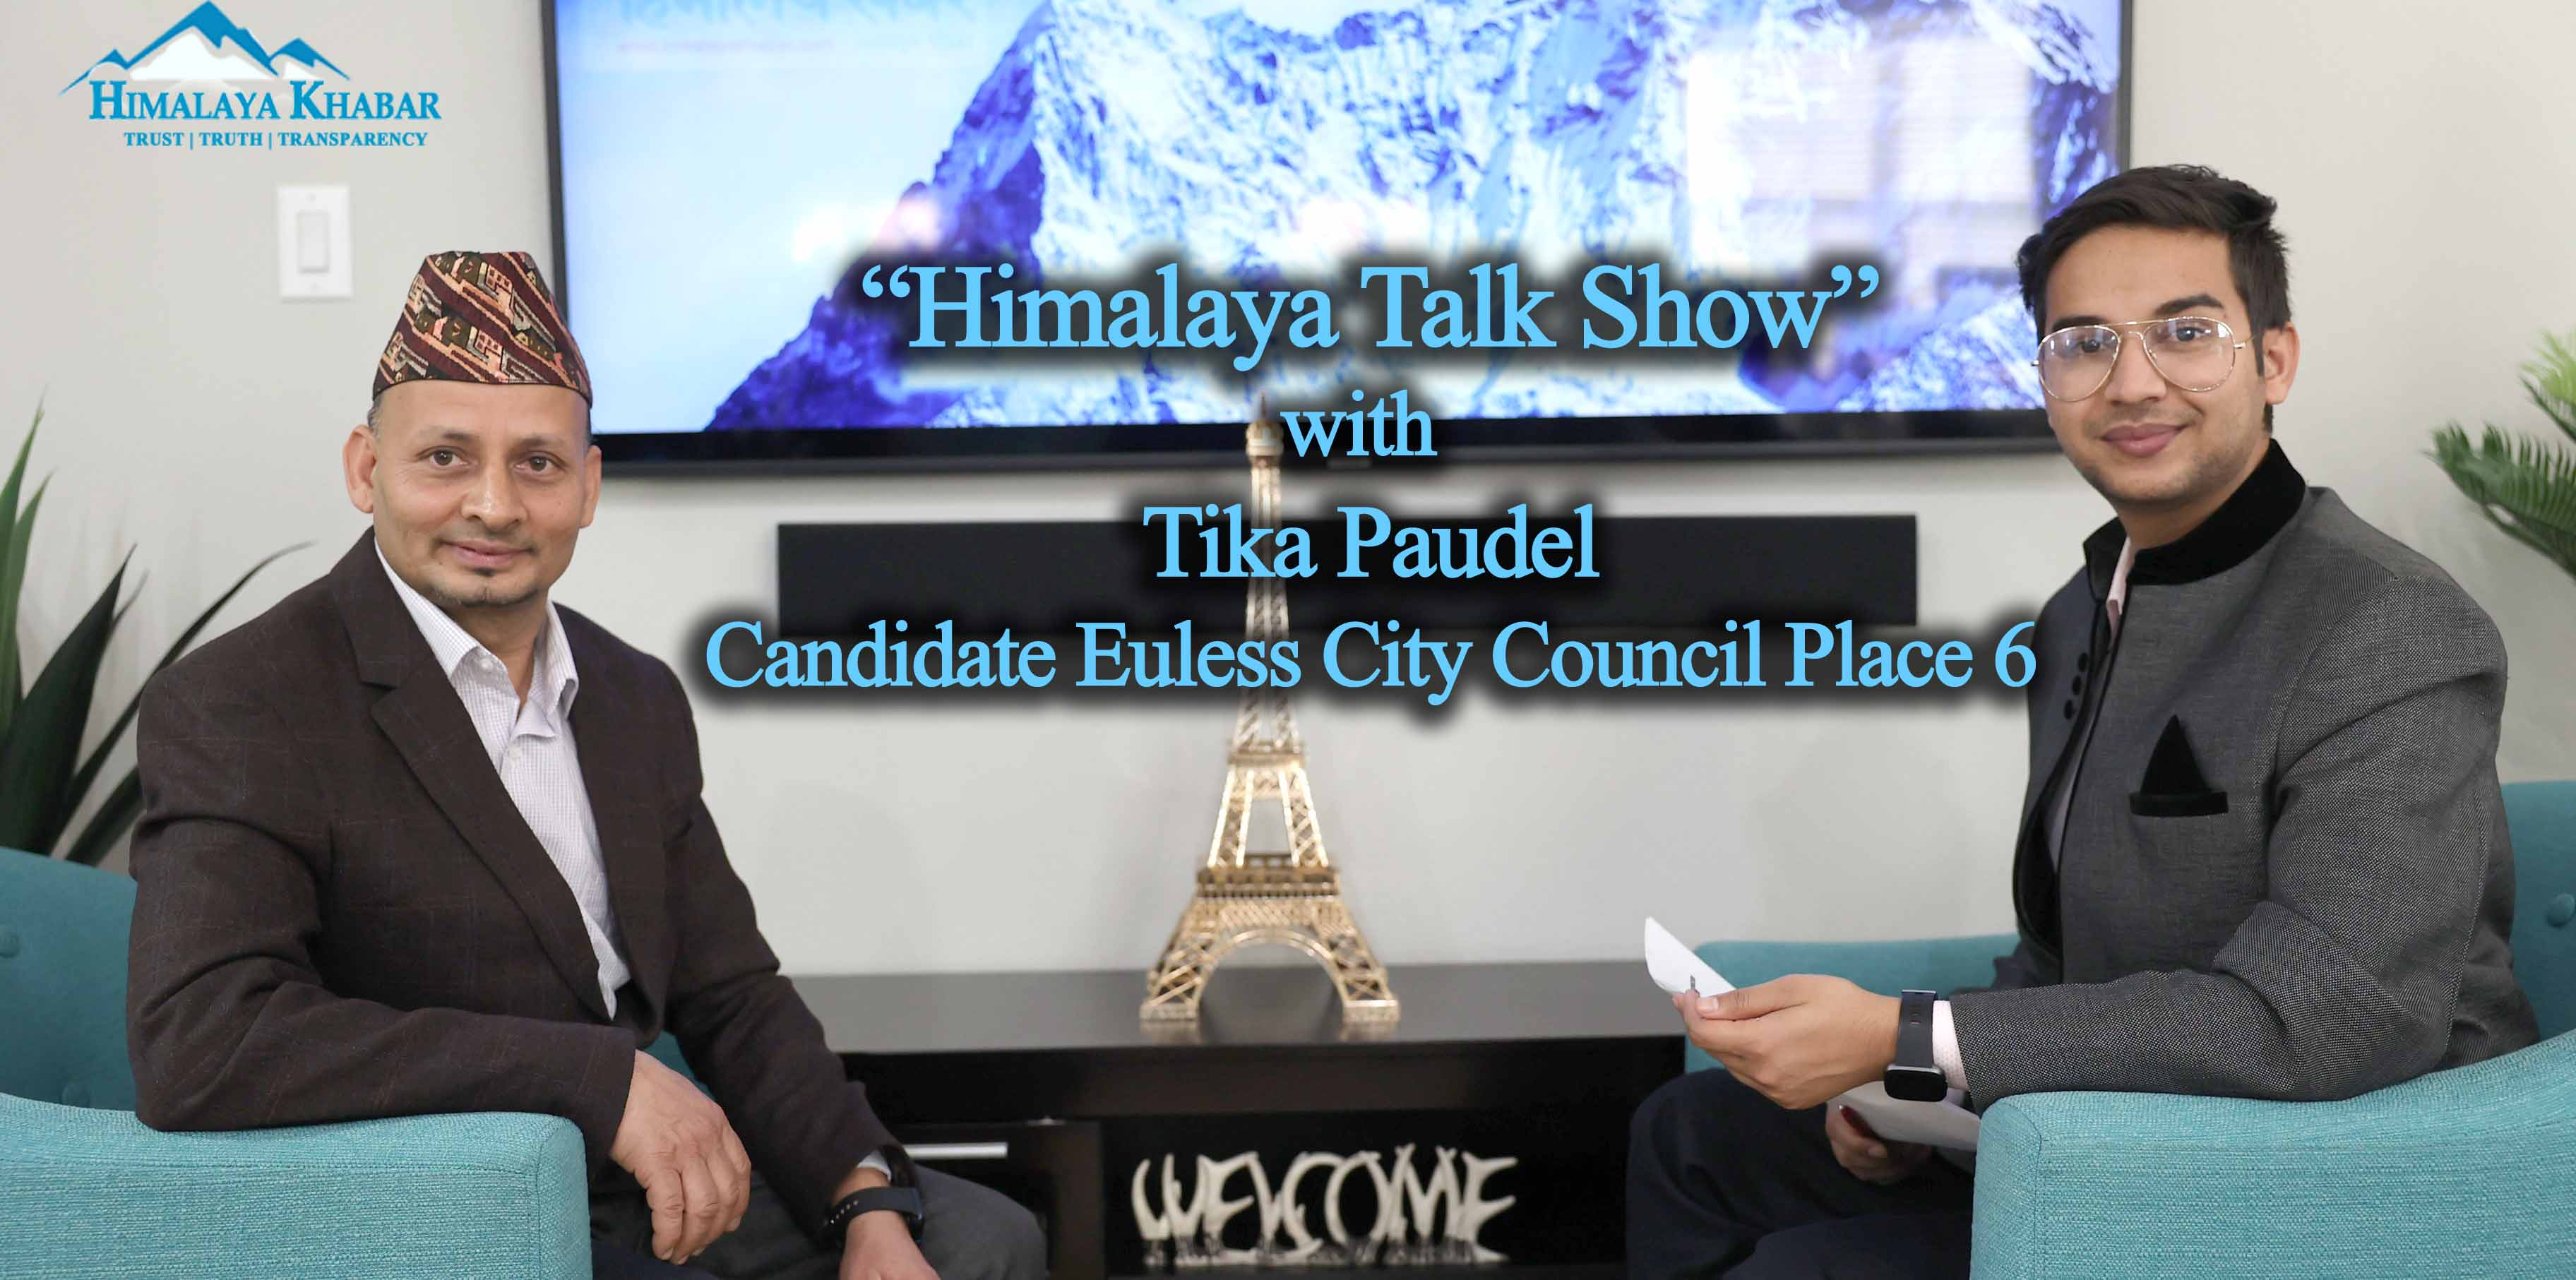 Himalaya Talk Show with Tika Paudel | Candidate Euless City Council Place 6